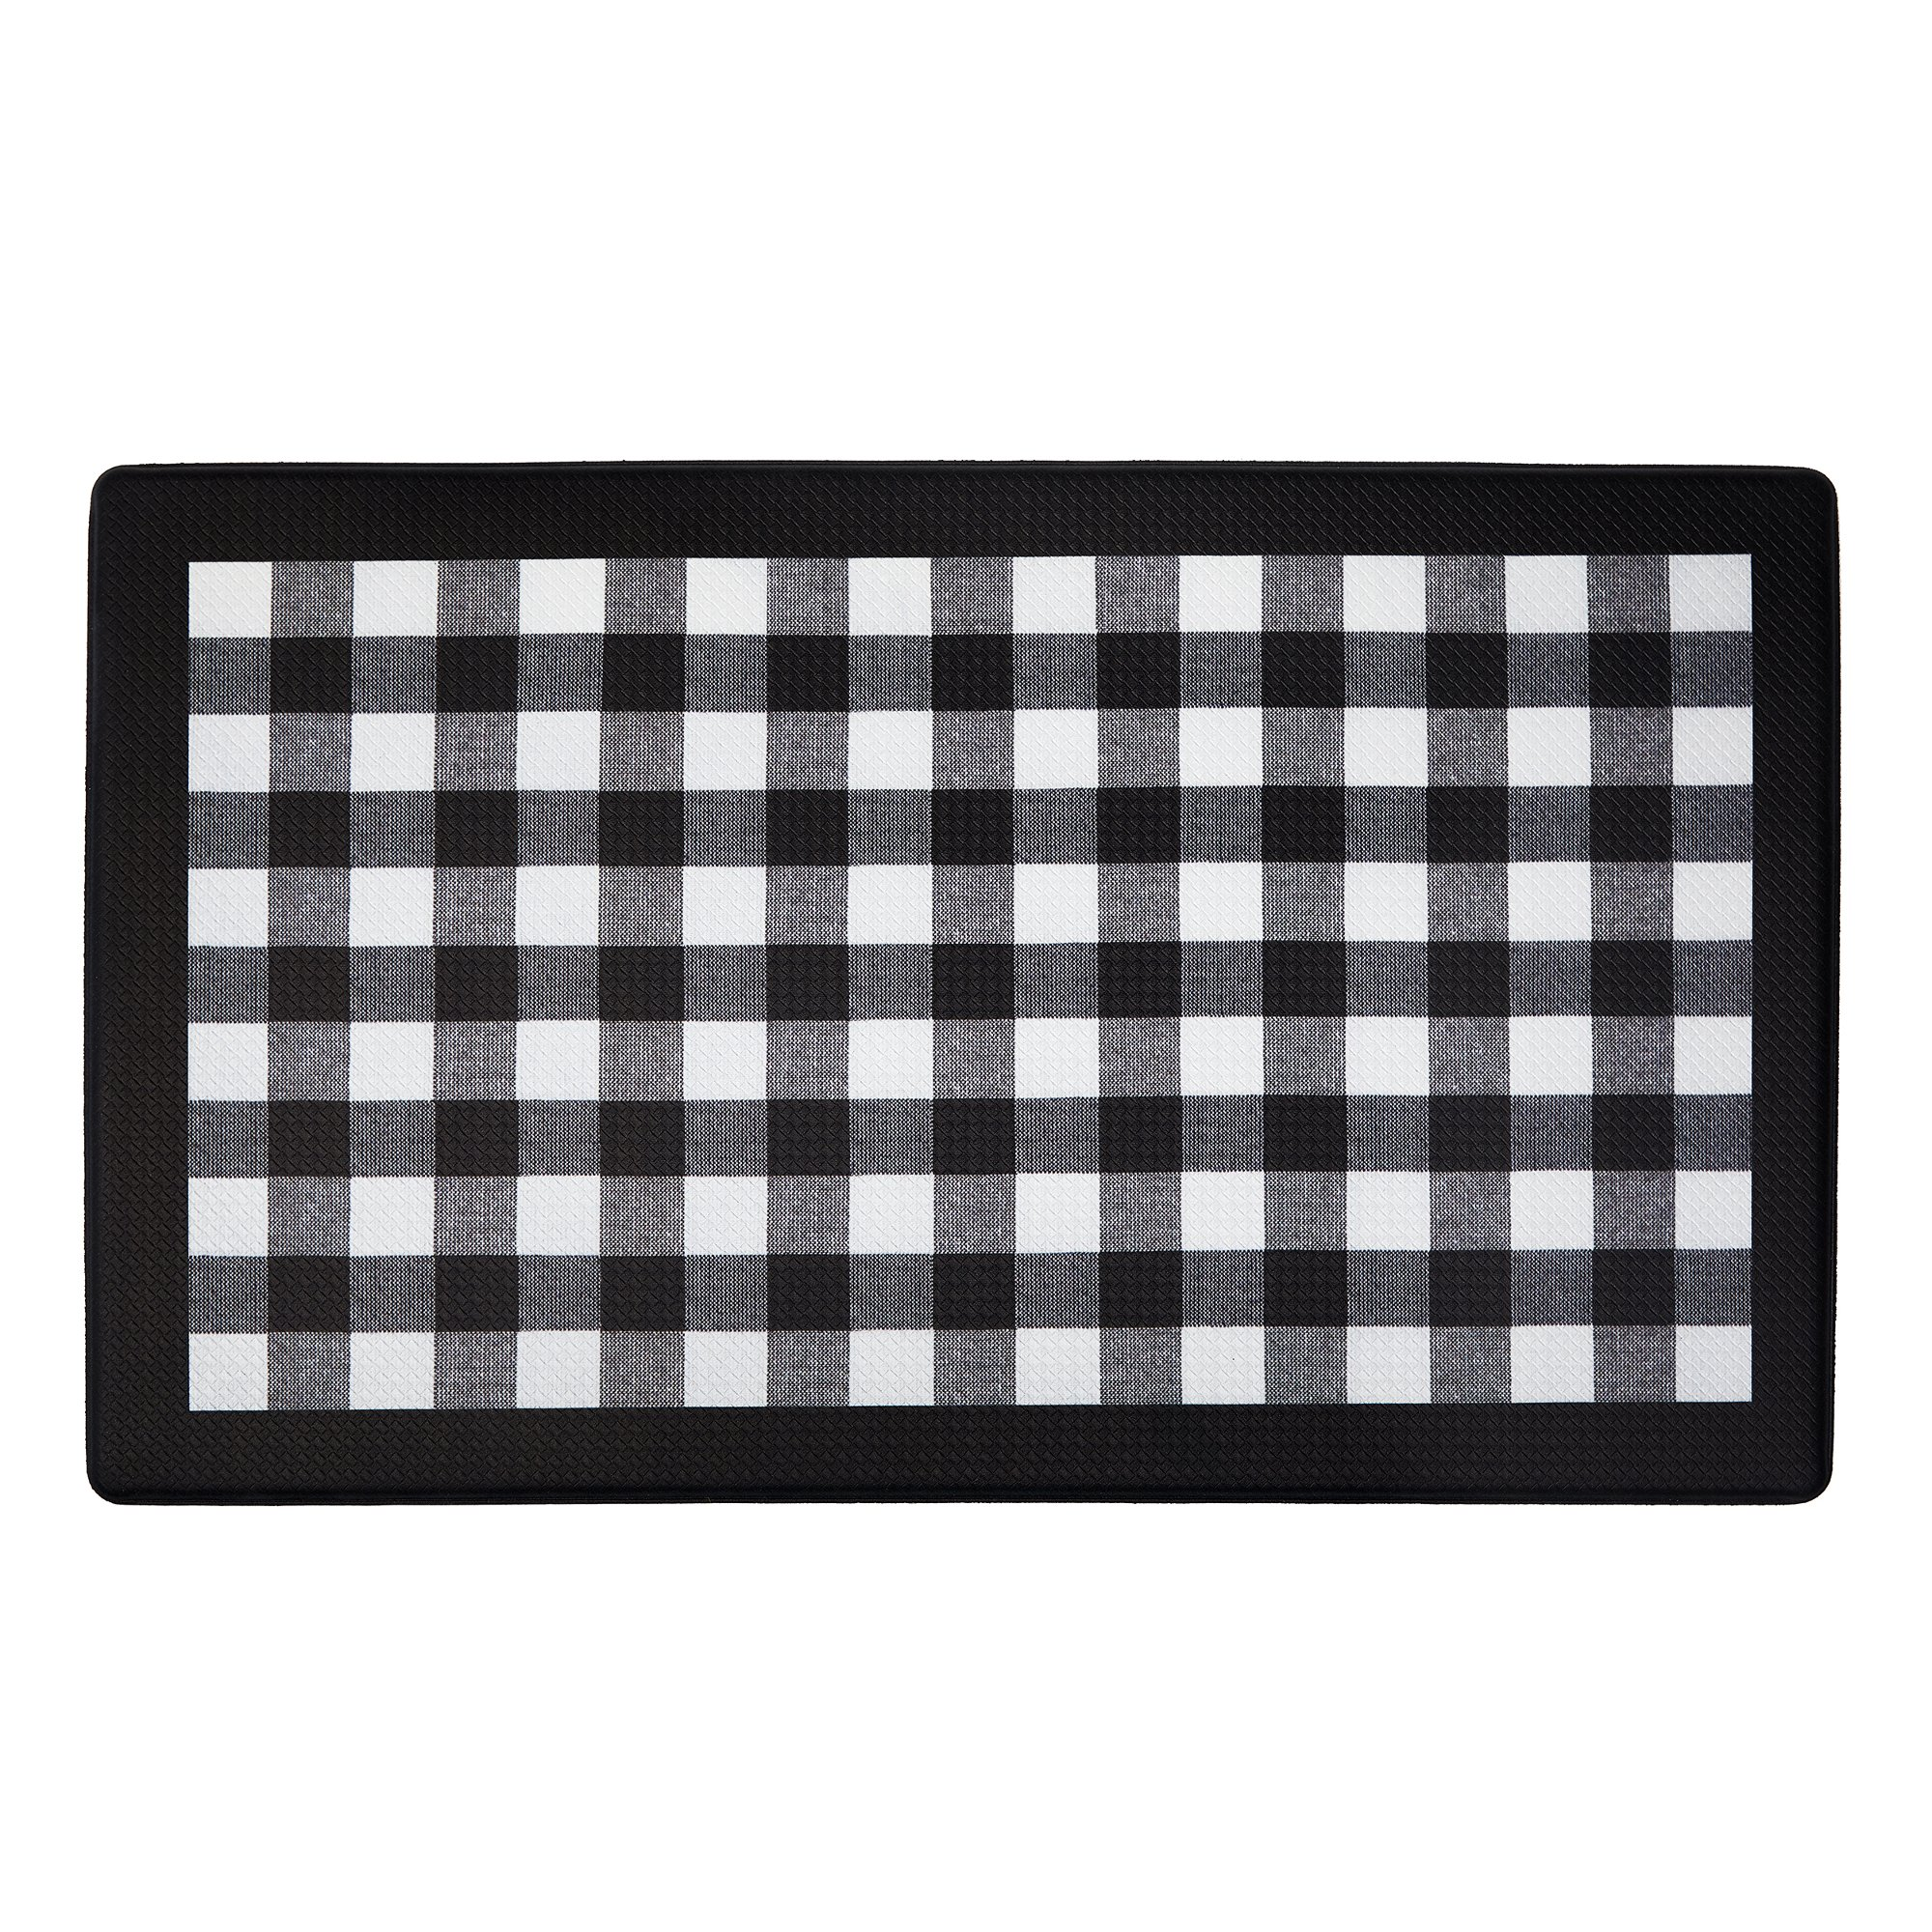 Achim Home Furnishings ANFTMBBK12 Buffalo Check Anti Fatigue Mat, 18'' x 30'', Black by Achim Home Furnishings